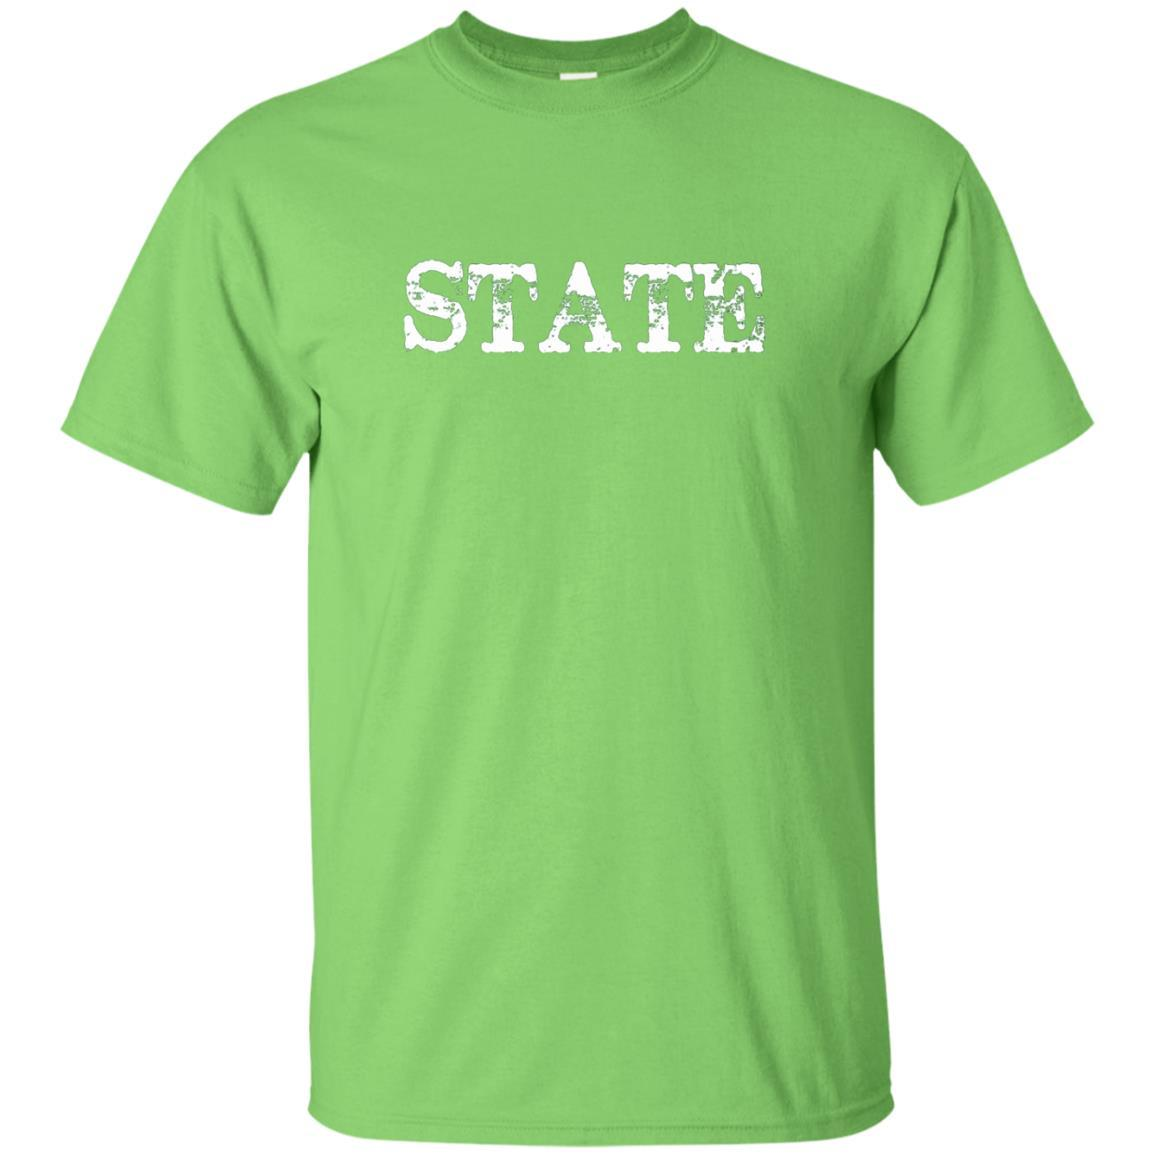 Distressed Michigan State College T-Shirt